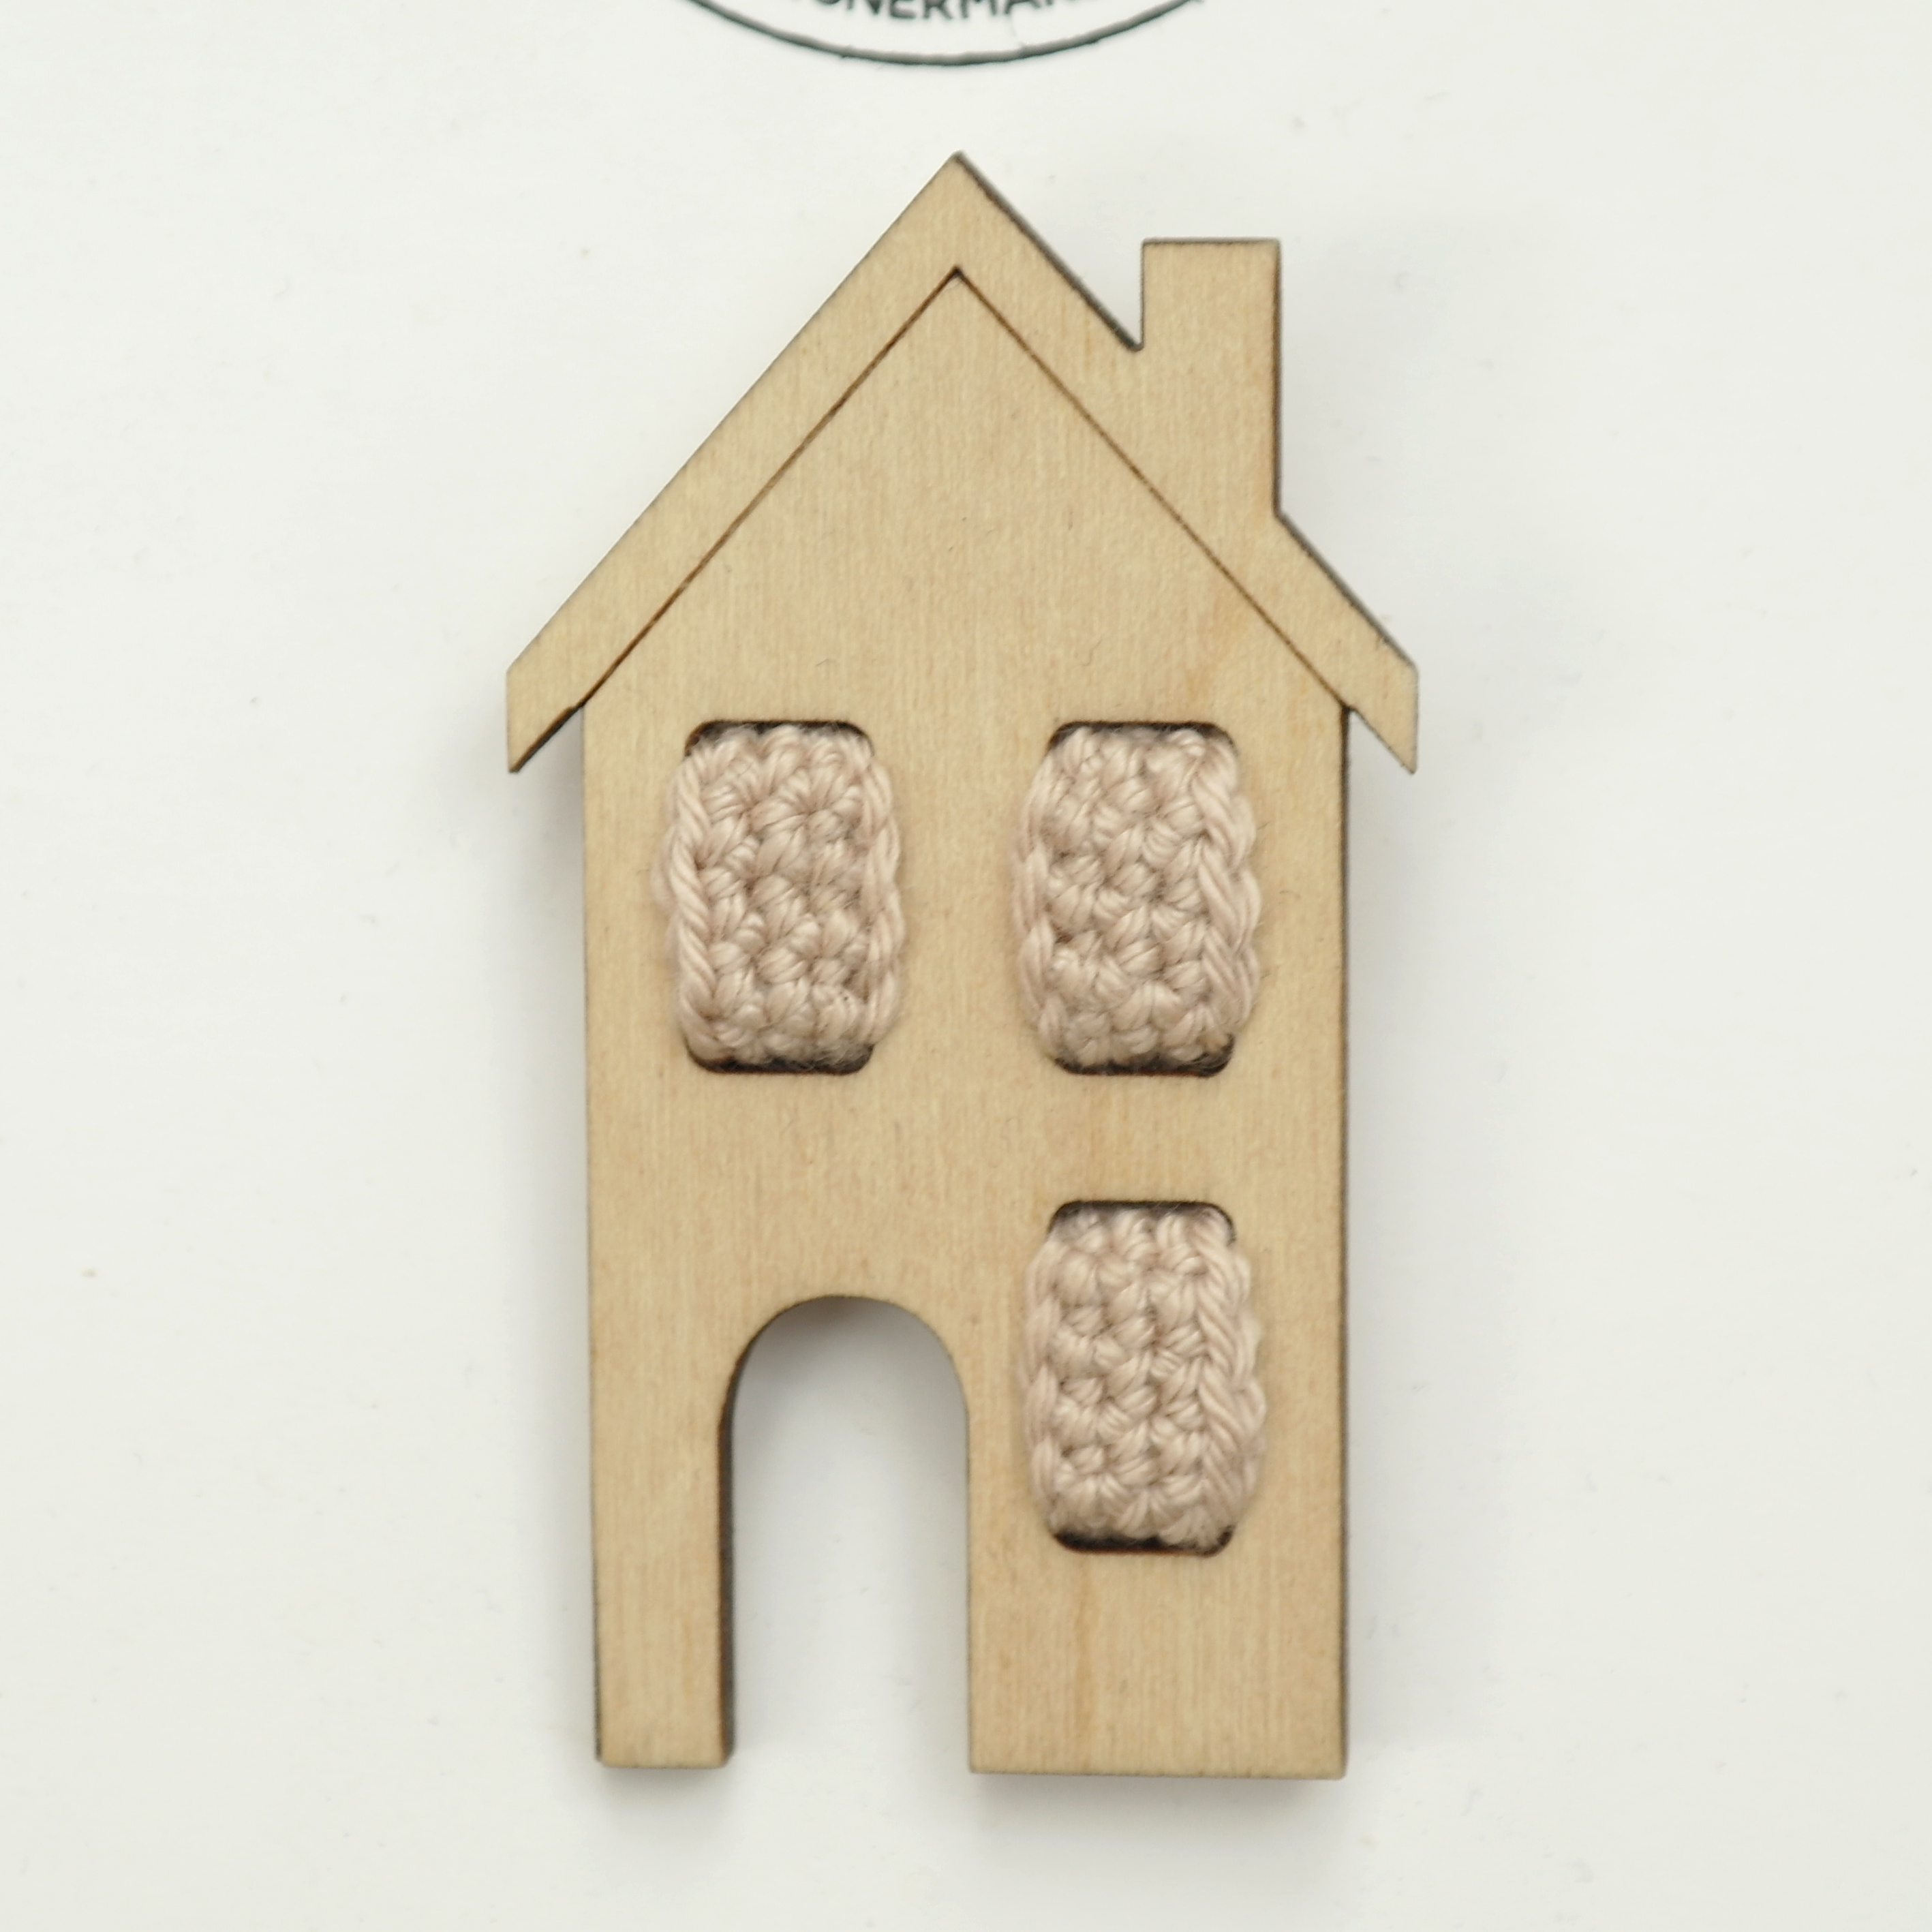 House Brooch - Wood with Crochet